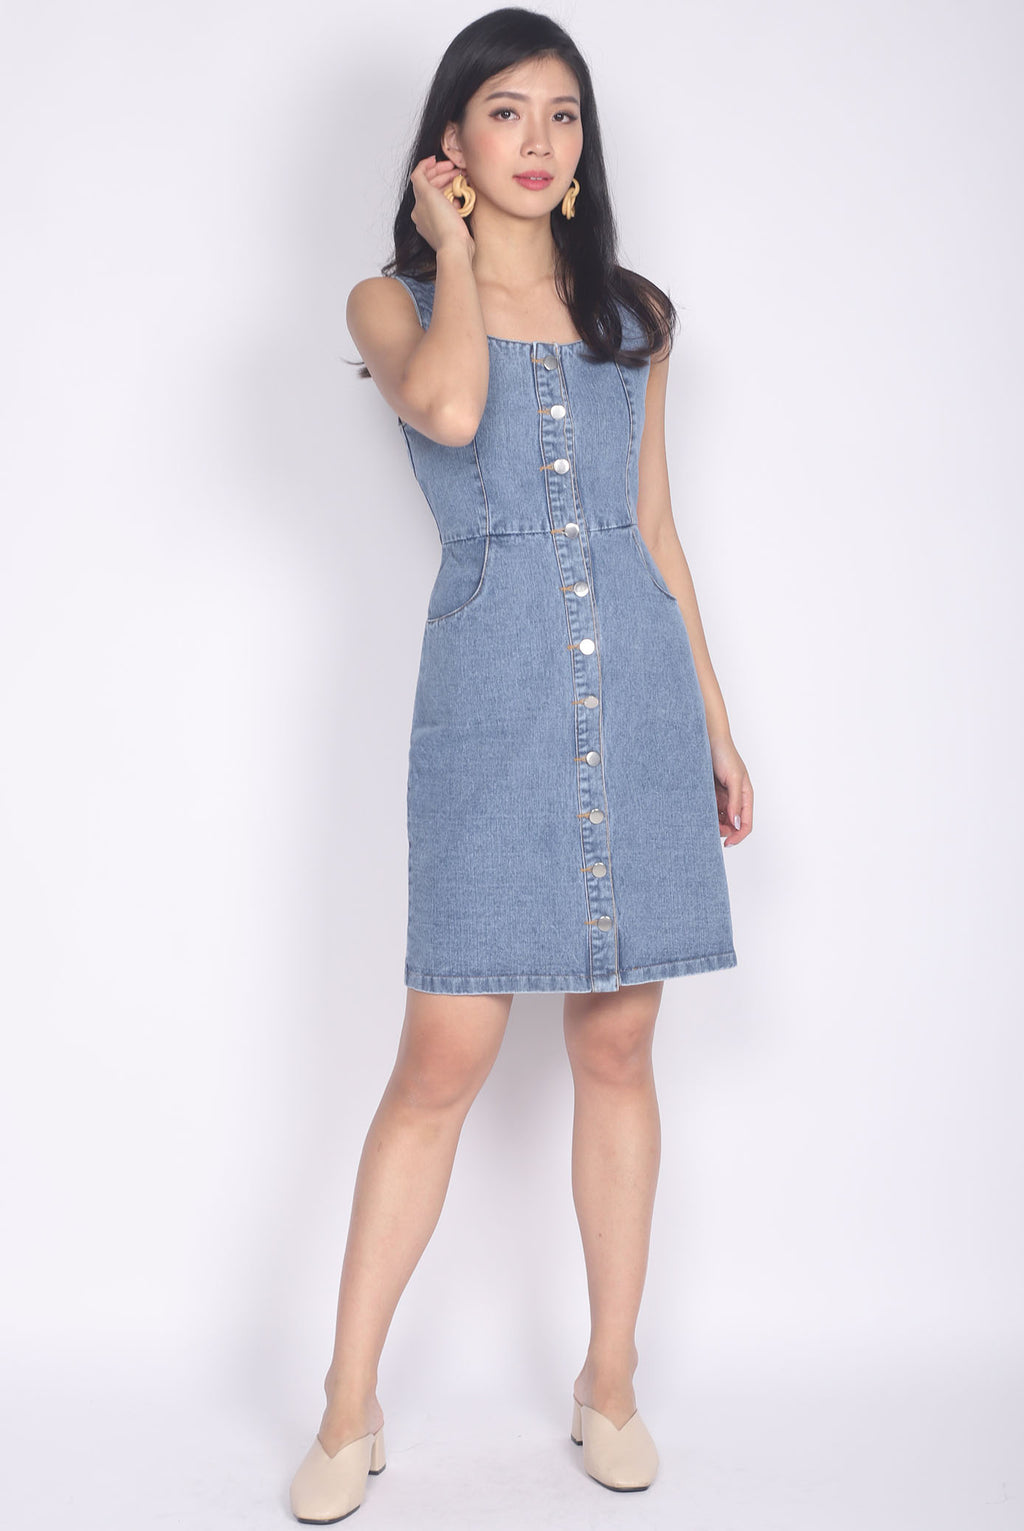 TDC Septima Buttons Denim Dress In Dark Wash